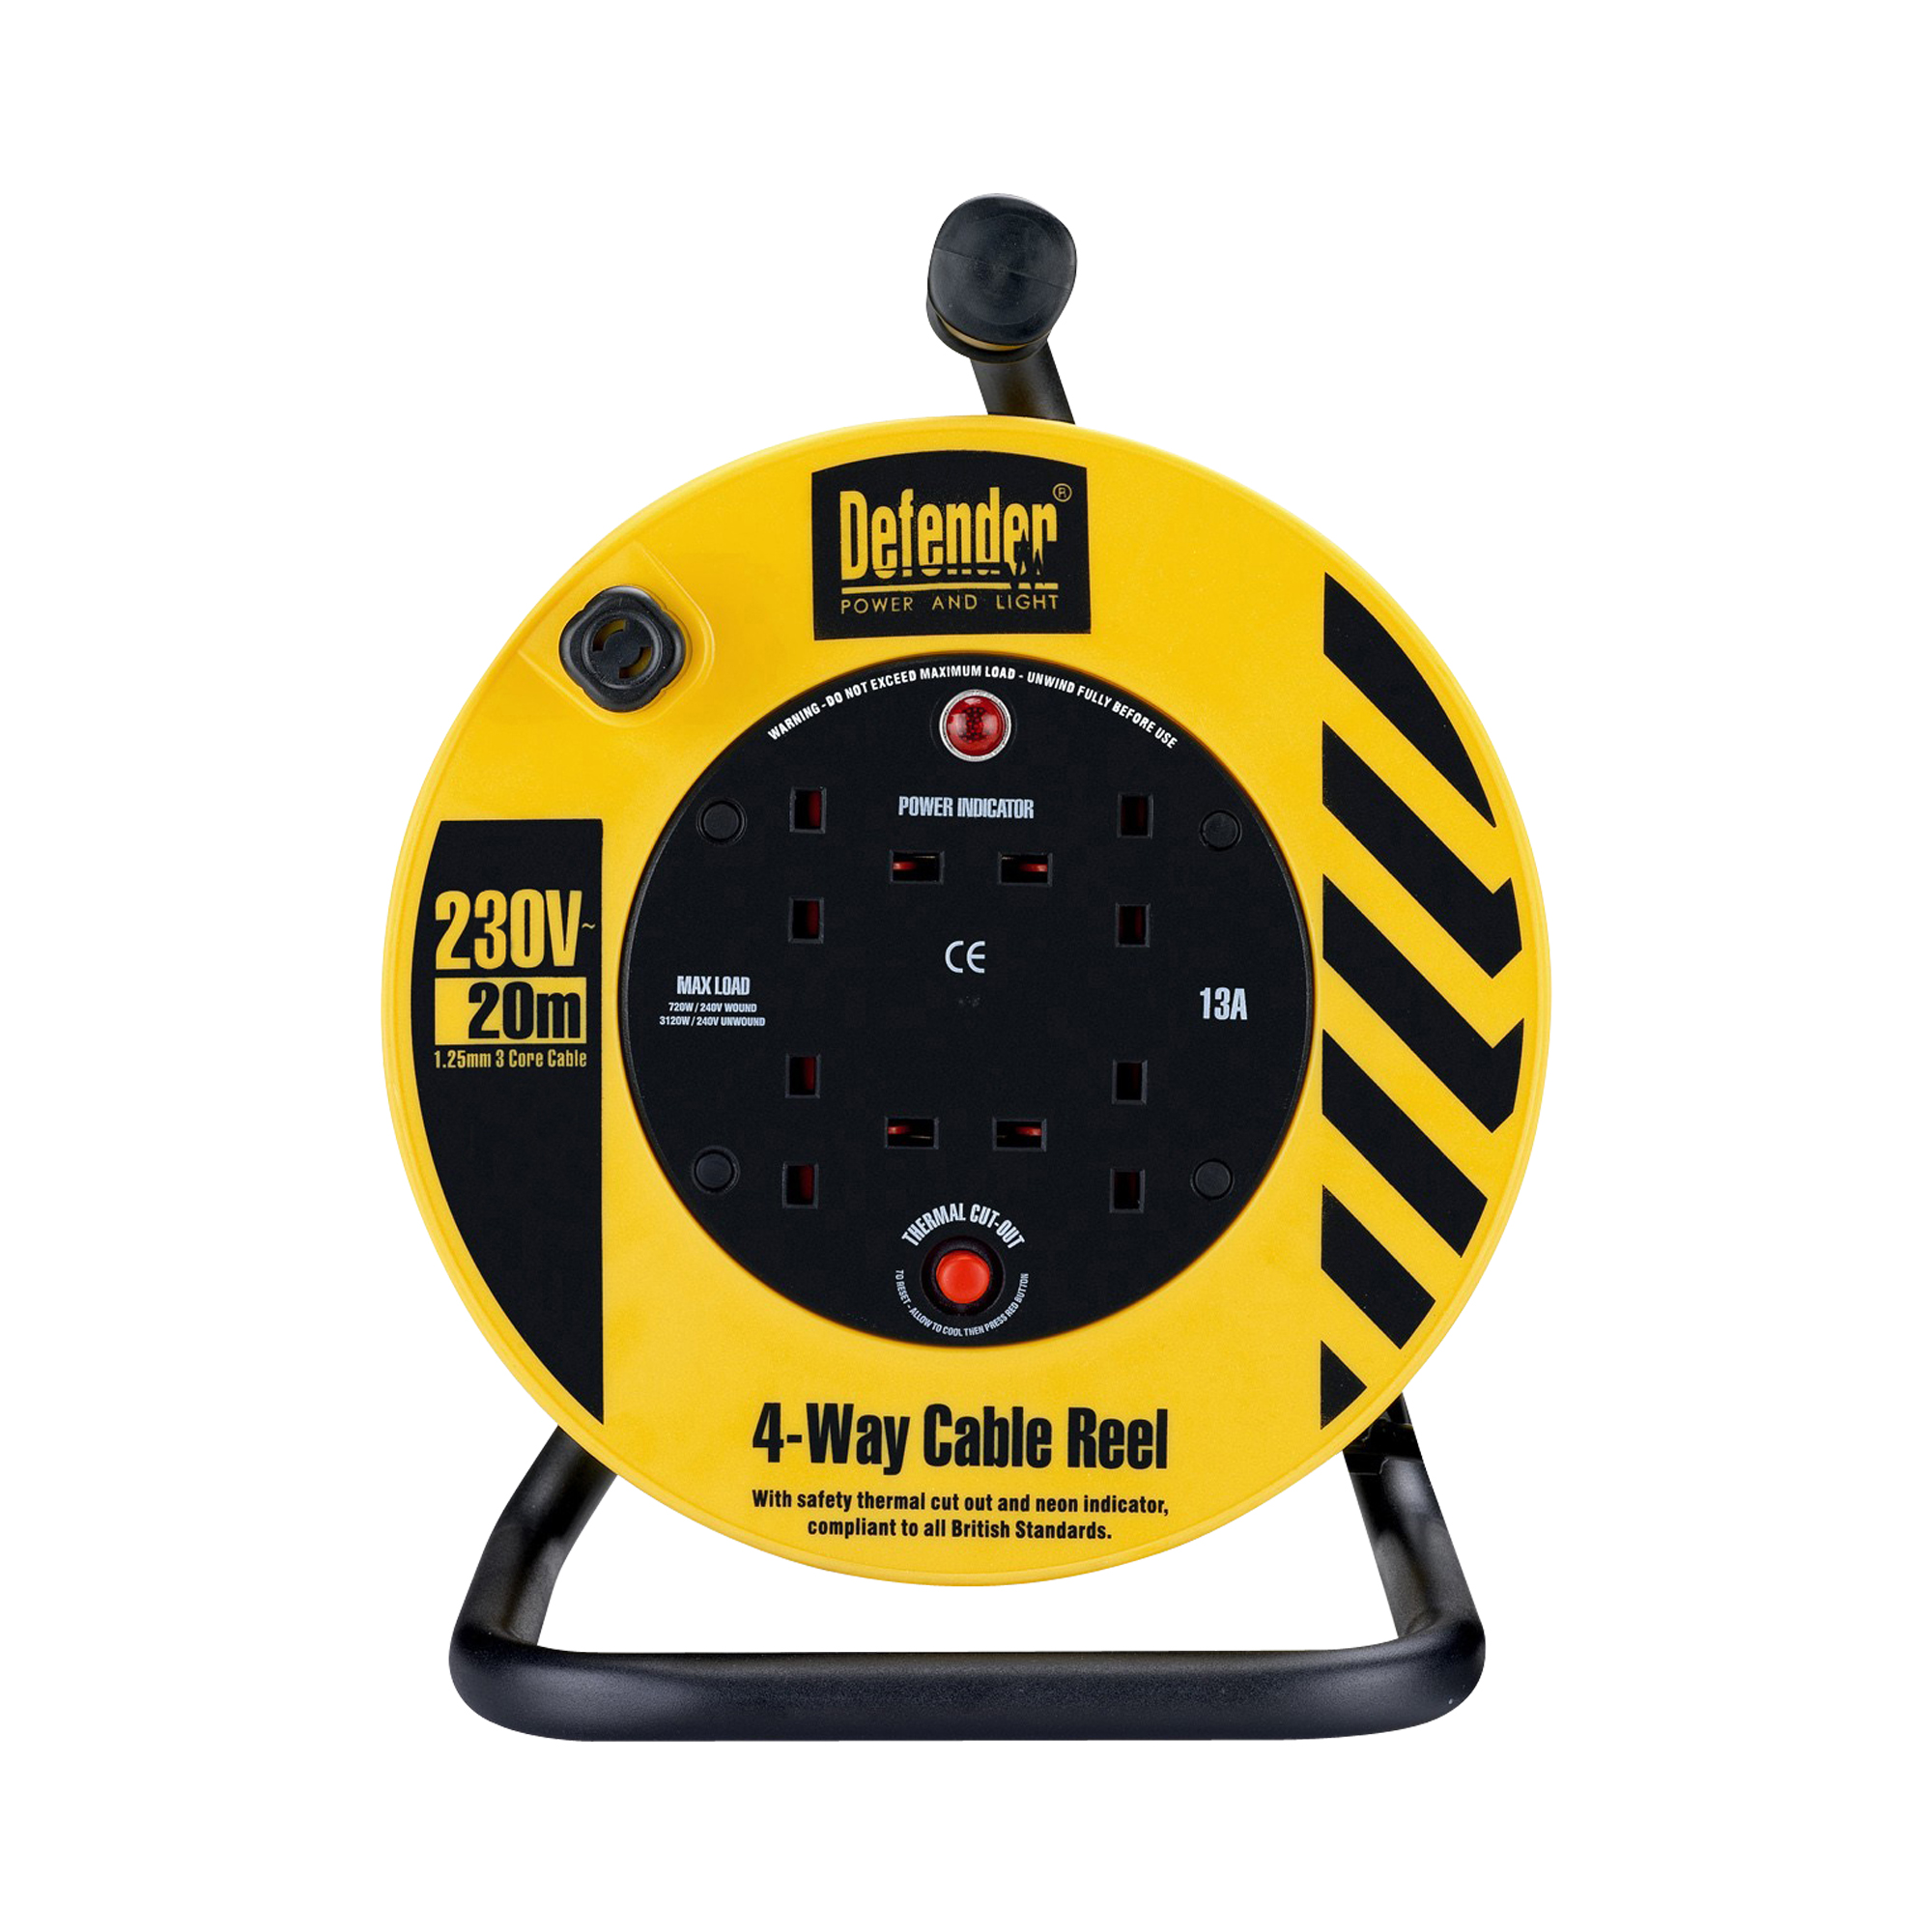 Defender black and yellow 20M 4-way cable reel with steel frame, 4 power outlets, neon power indicator and Defender branding